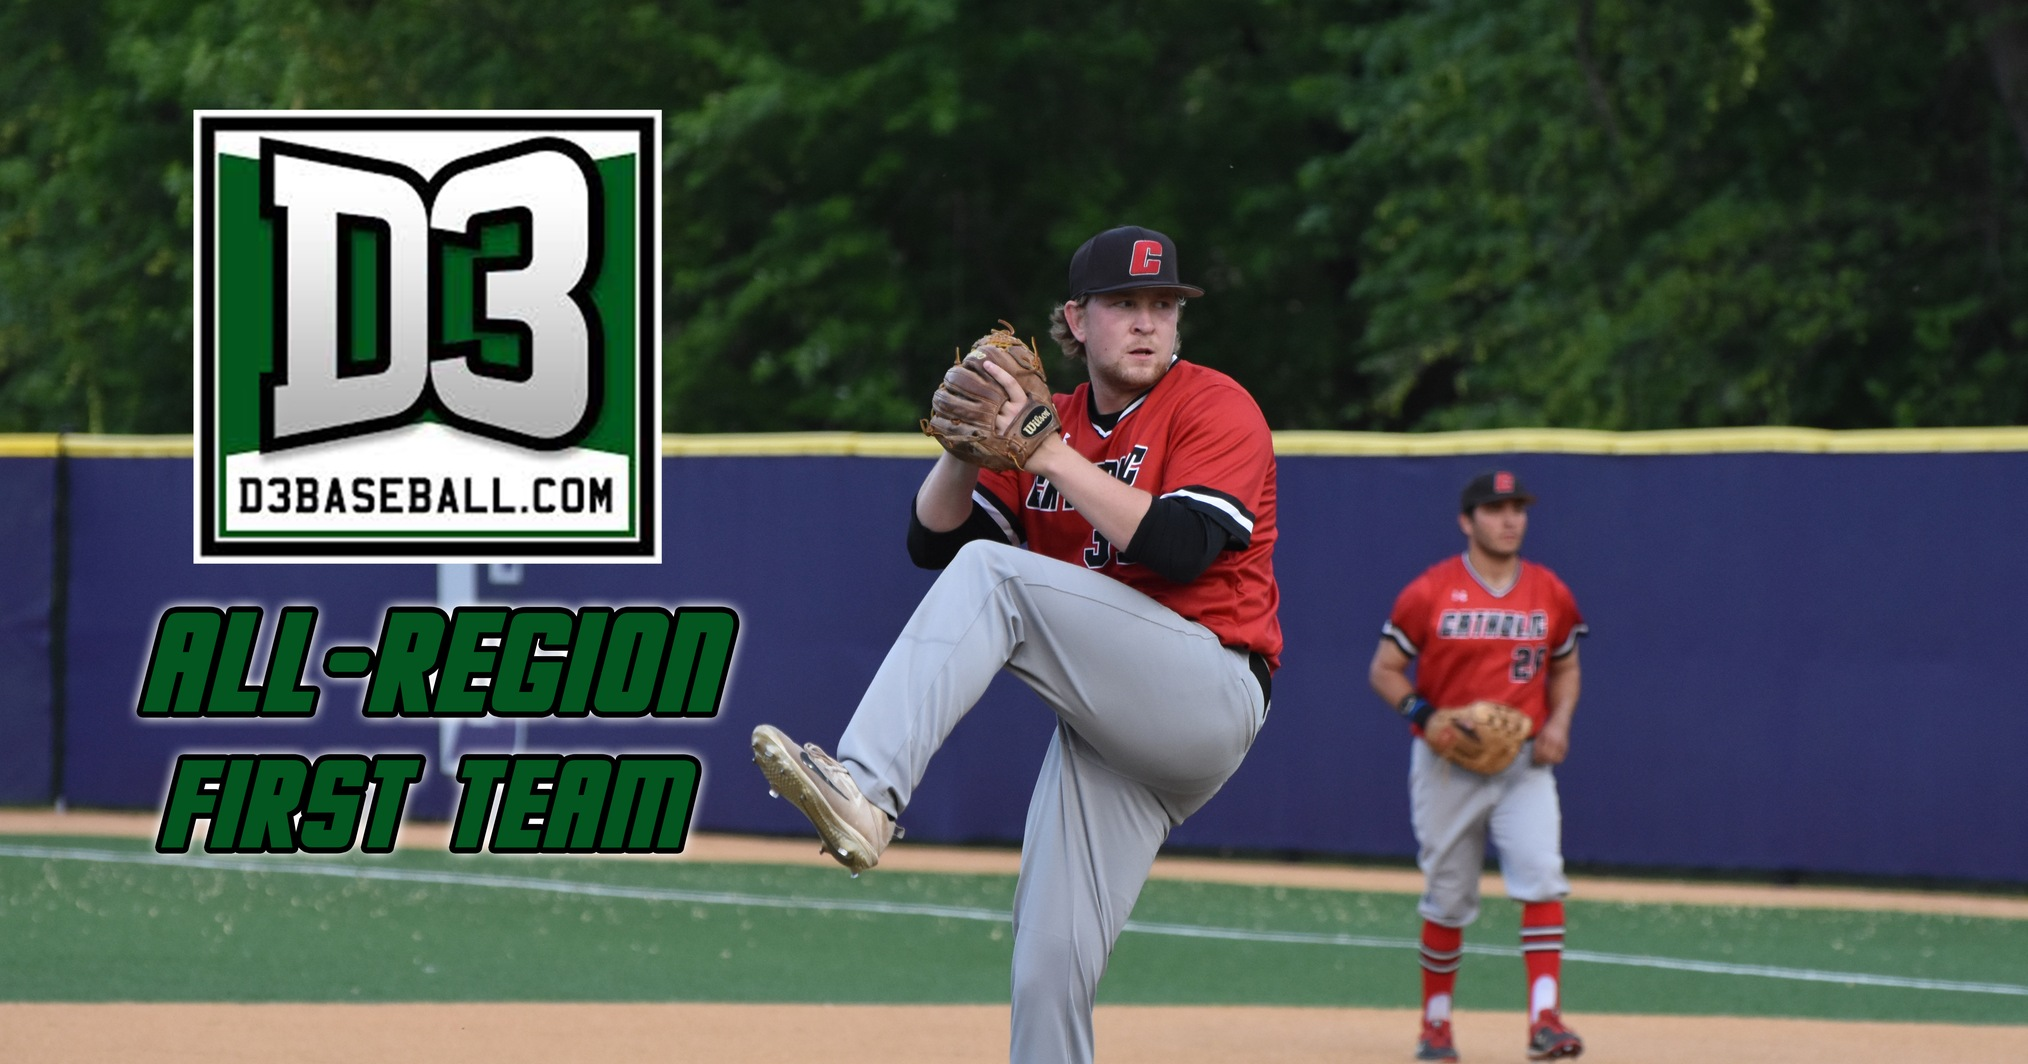 Mierzwa Named to D3baseball.com All-Region First Team